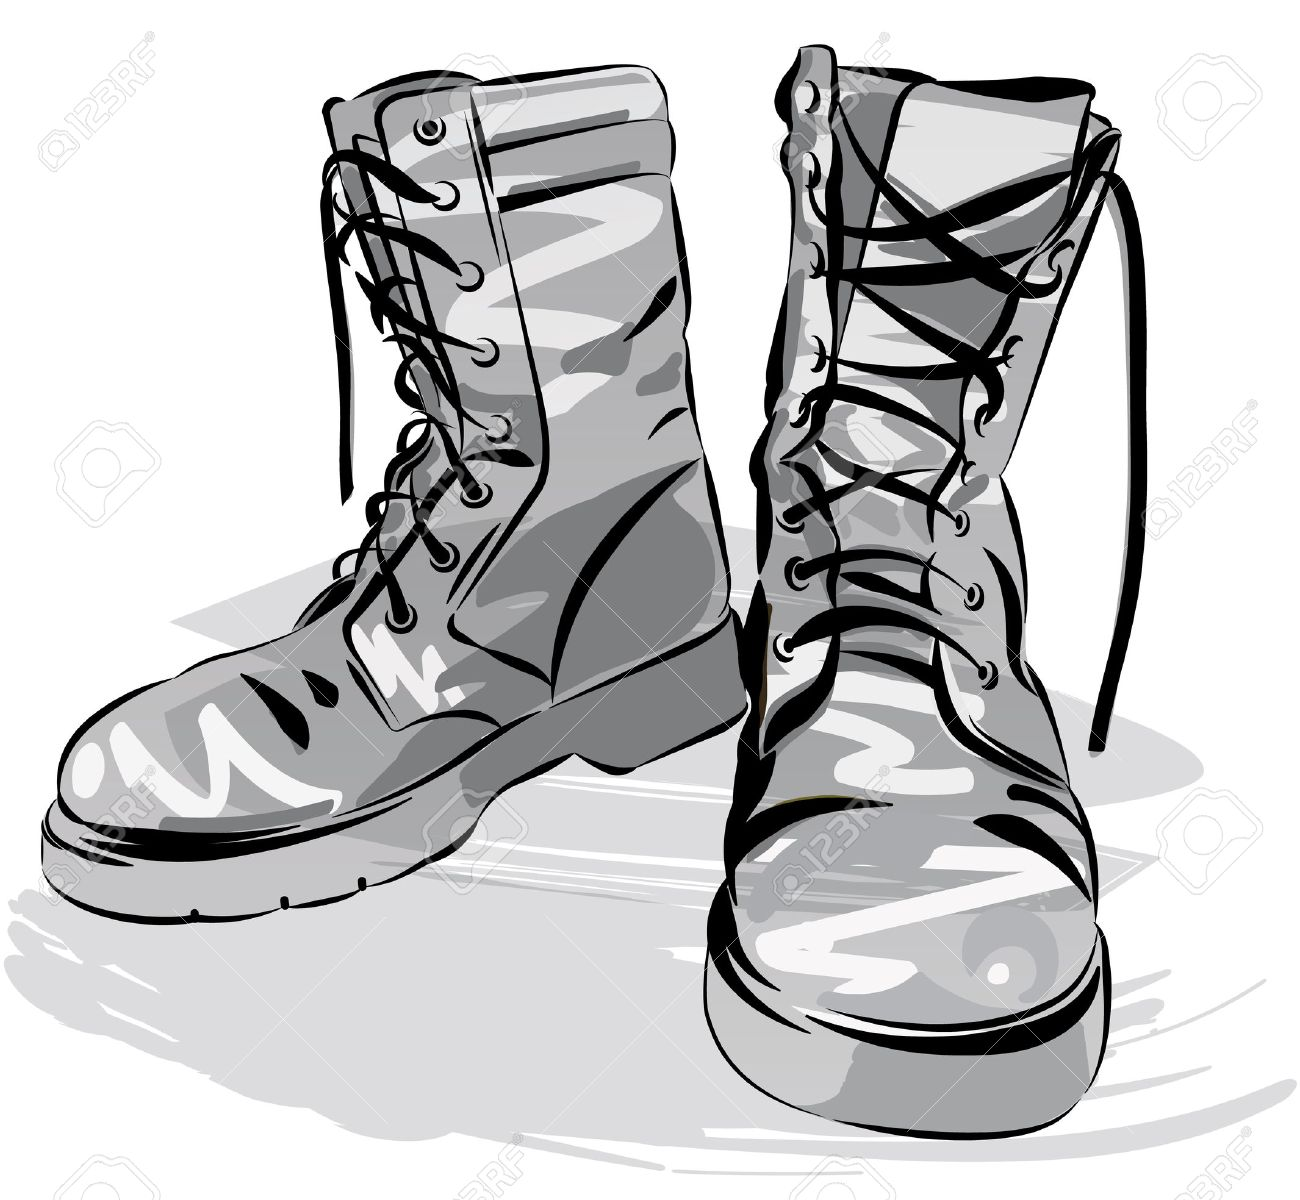 54,076 Boots Cliparts, Stock Vector And Royalty Free Boots ...